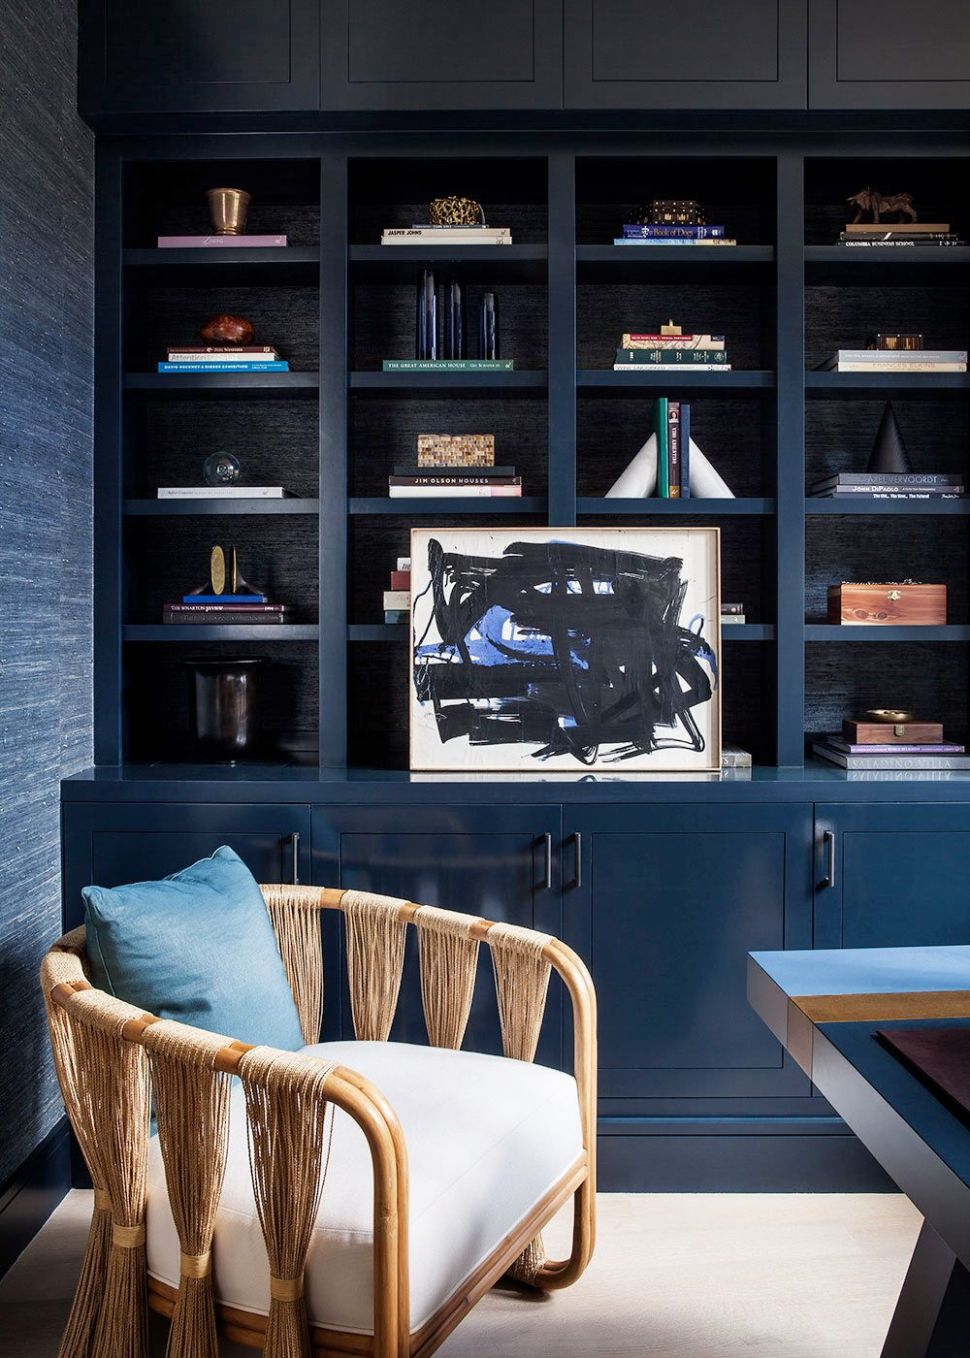 8 Best Blue Rooms - Decor Ideas for Light and Dark Blue Rooms